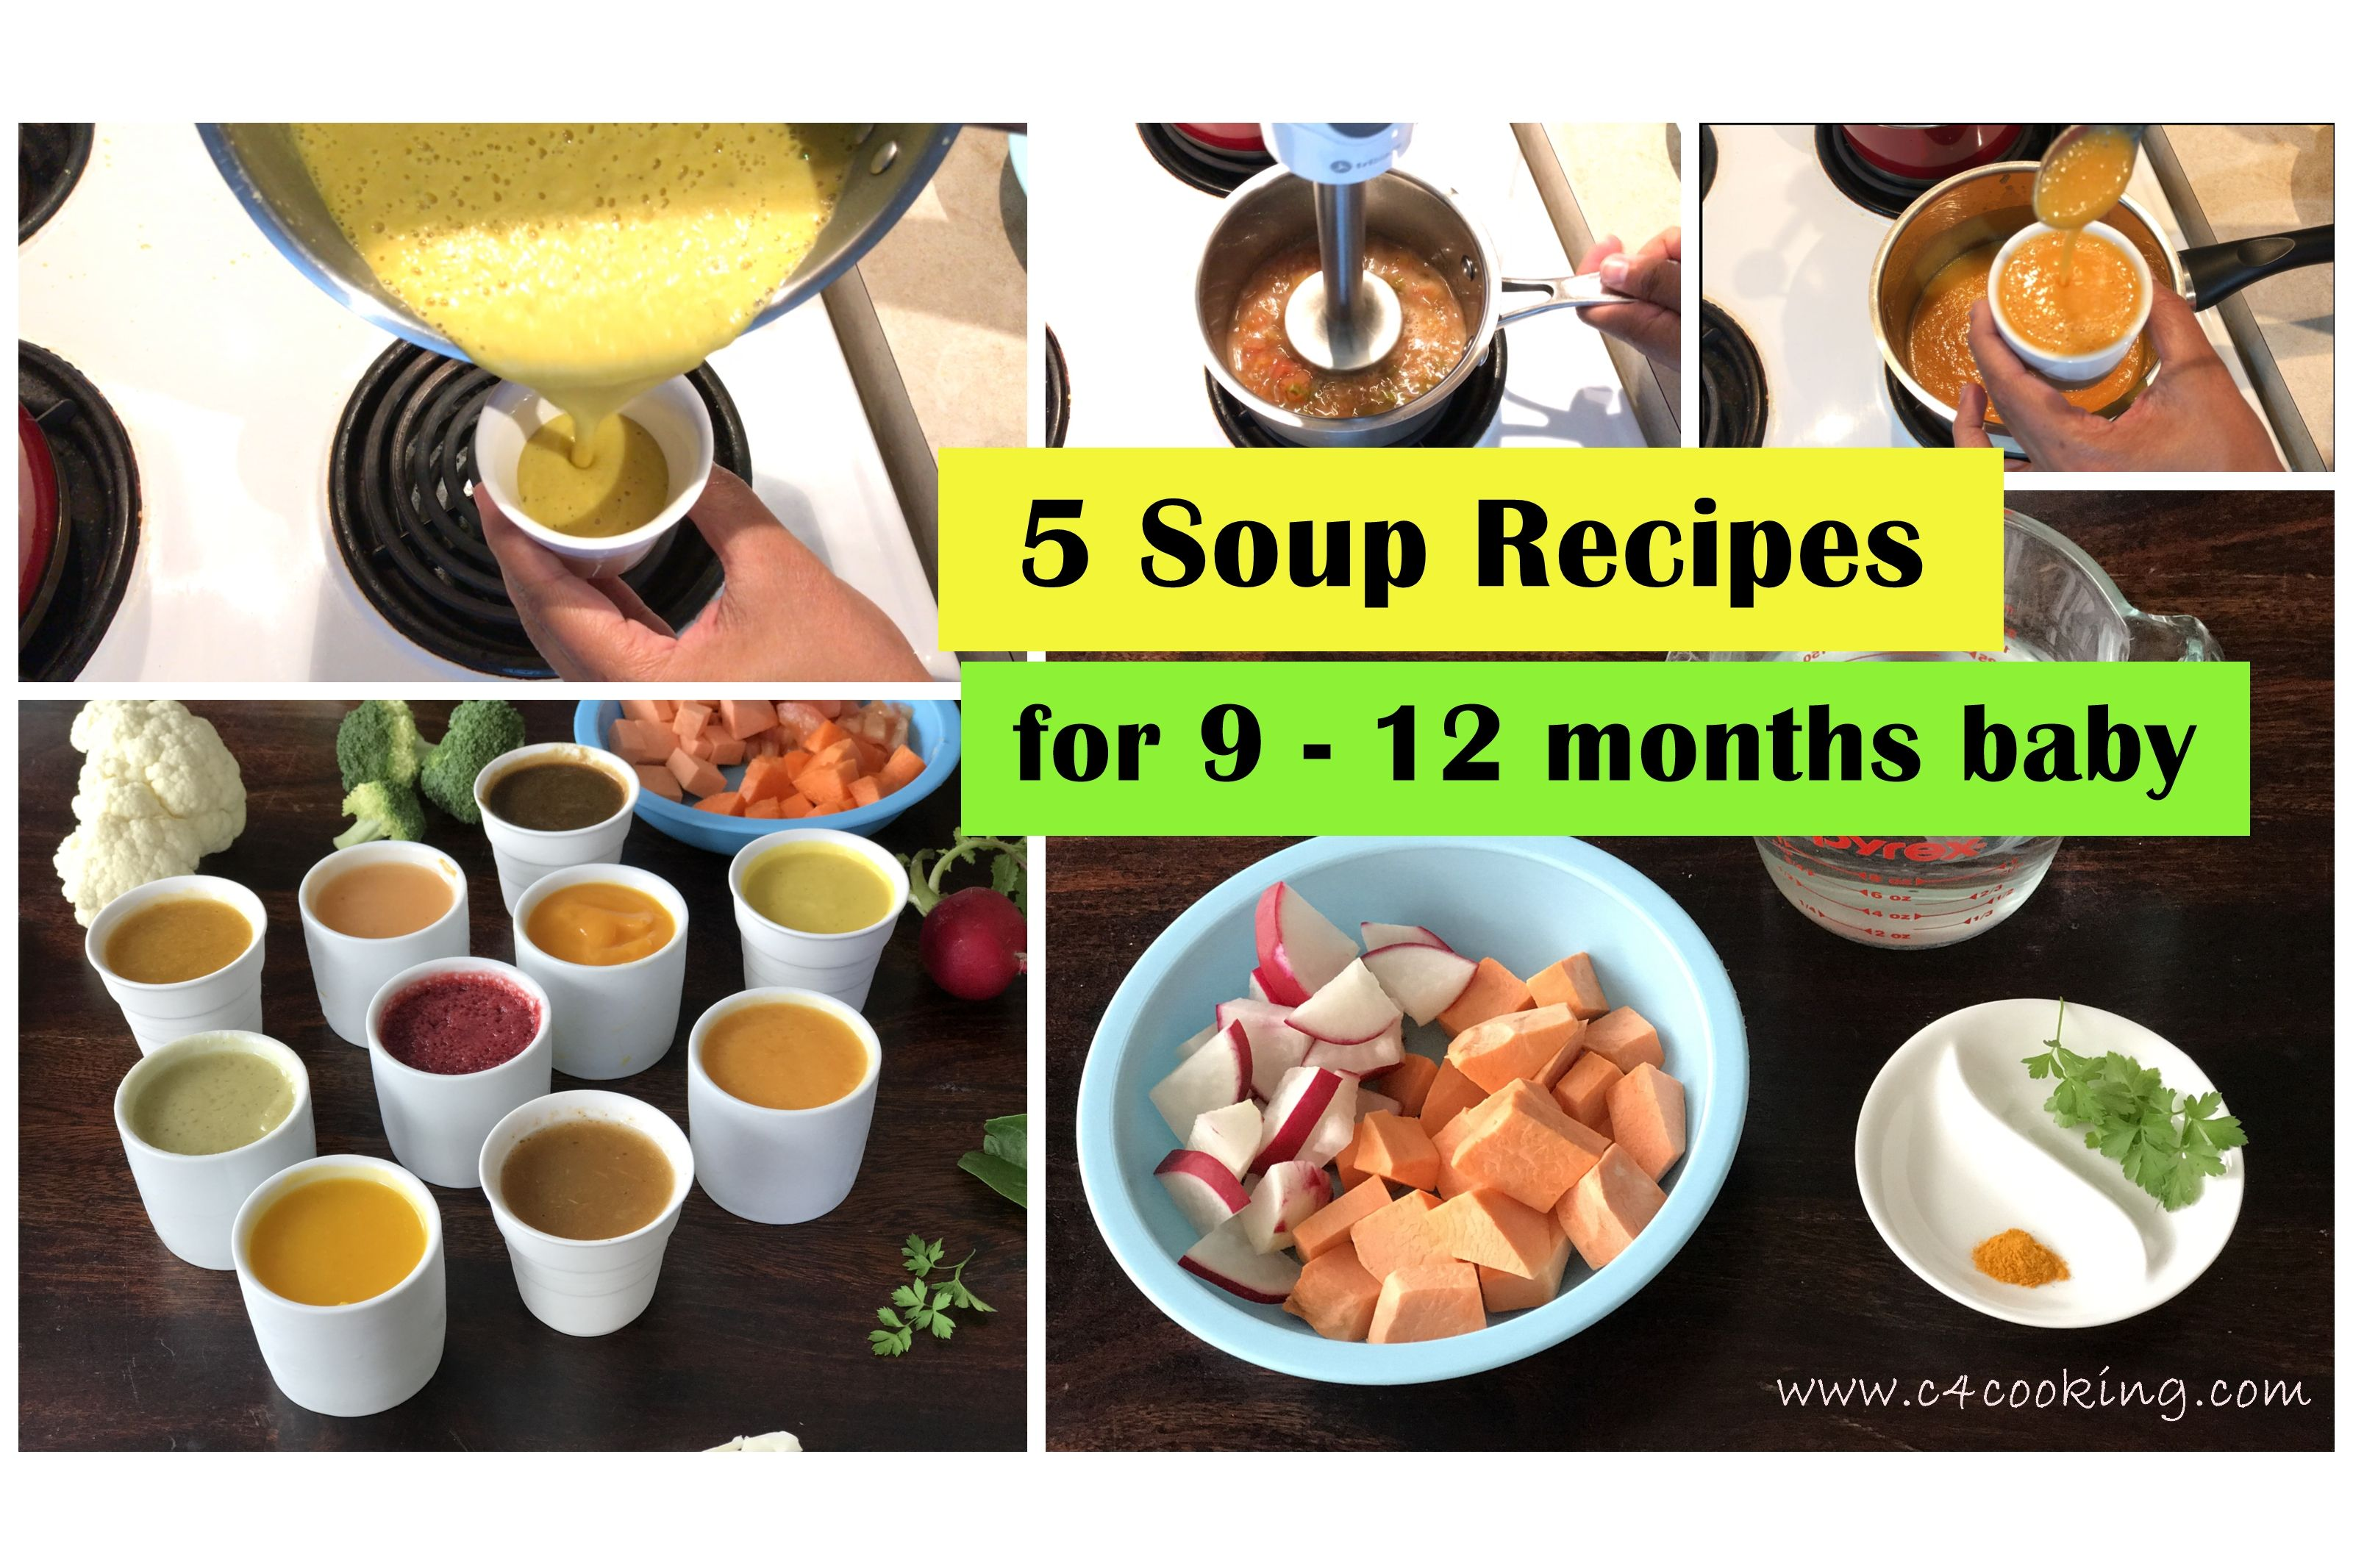 '5 immune boosting soup recipes for 9 12 months baby